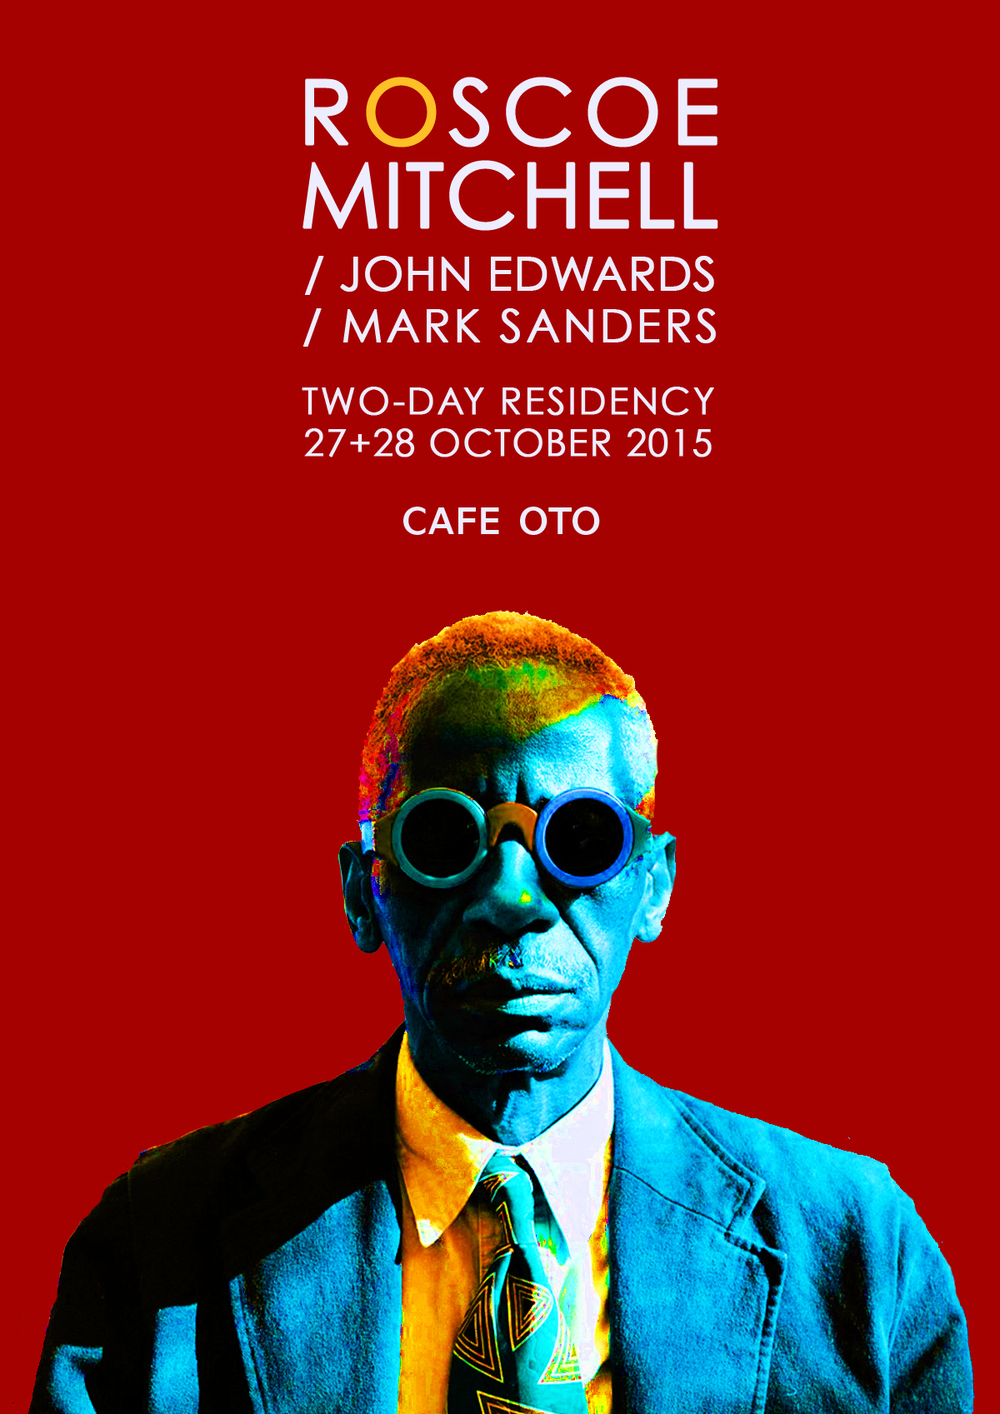 Poster design 2015 - Poster Design For Roscoe Mitchell John Edwards Mark Sanders Residency At Cafe Oto